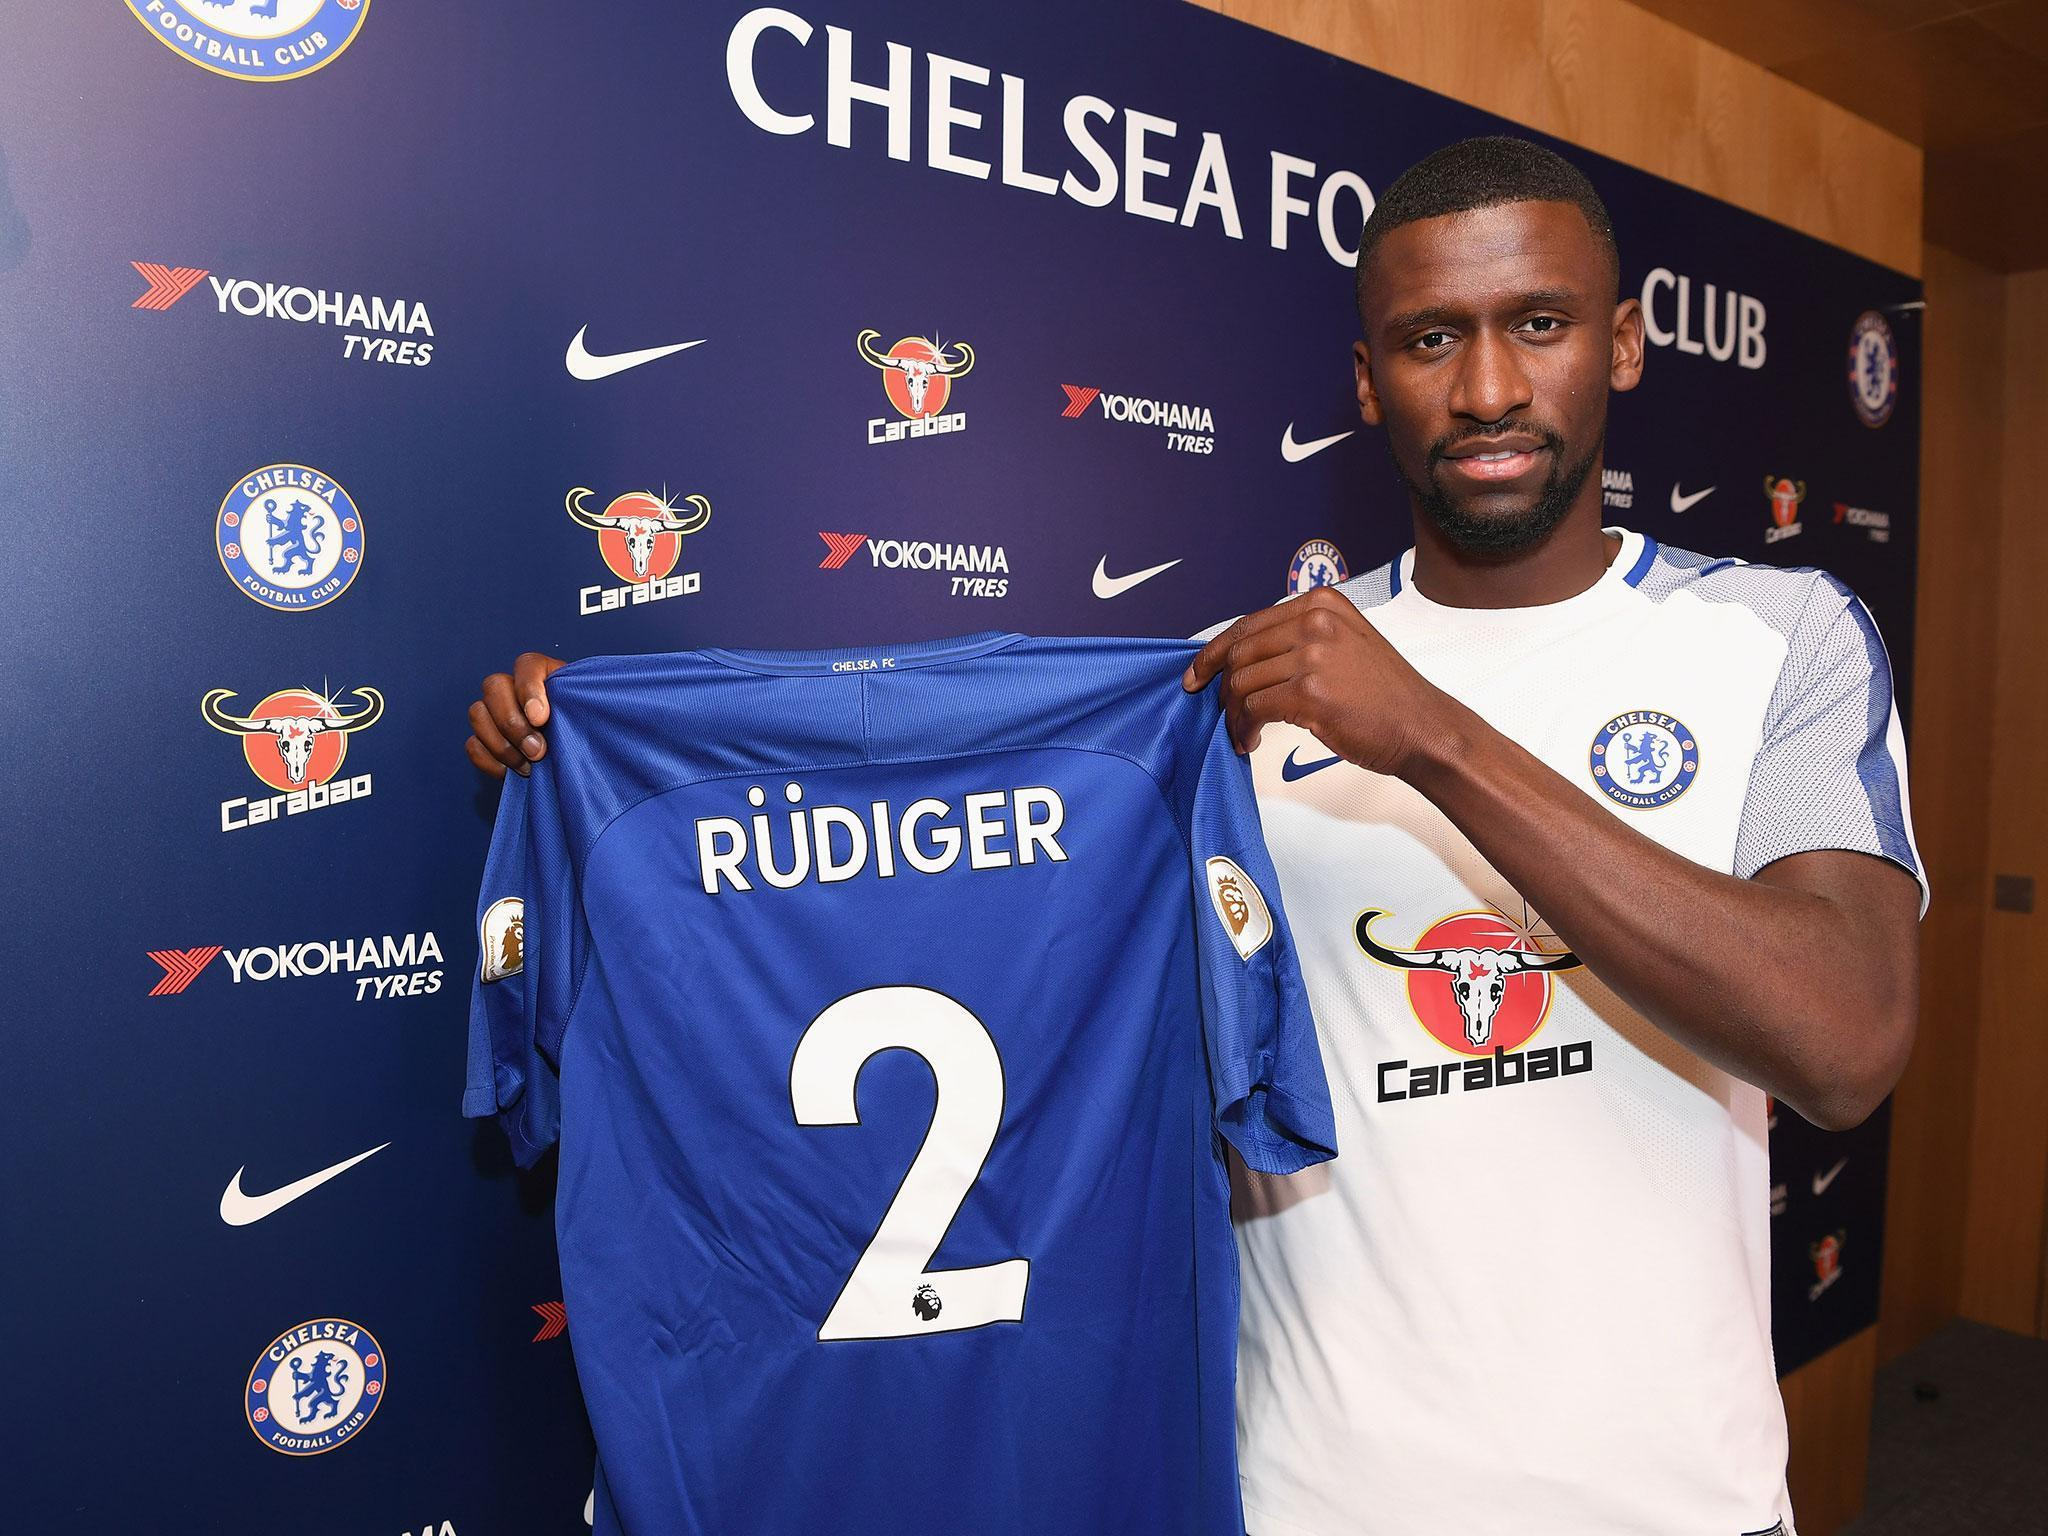 Chelsea sign Roma defender Antonio Rudiger in £34million deal | The ...